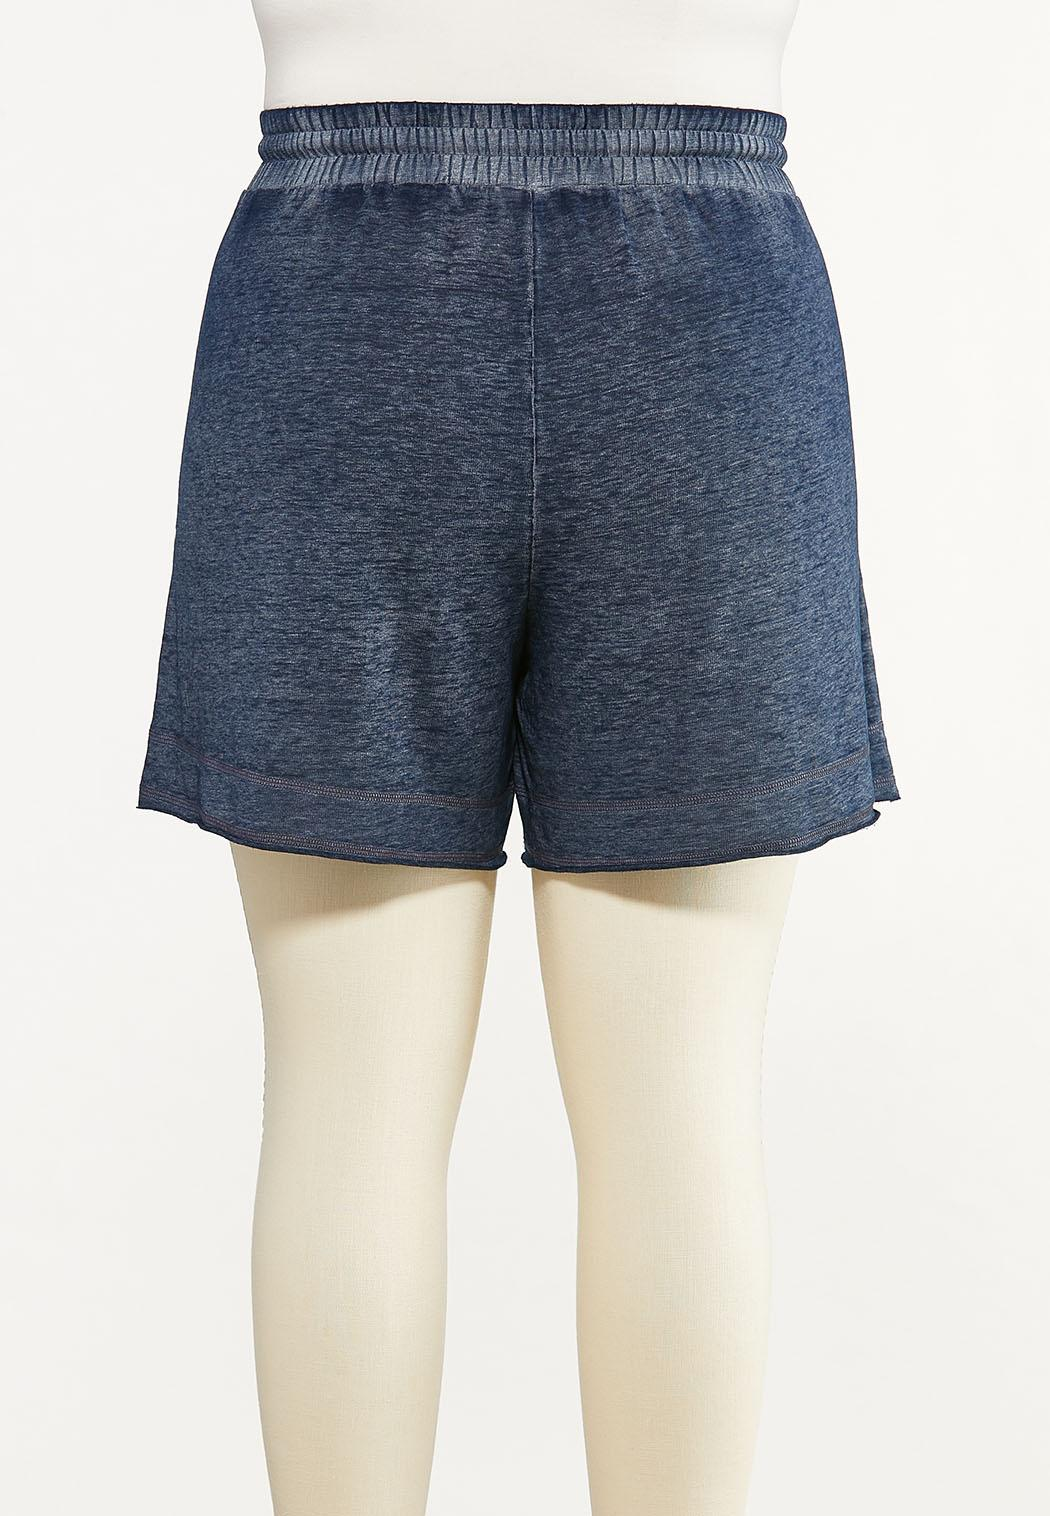 Plus Size Faded Navy Active Shorts (Item #44602582)